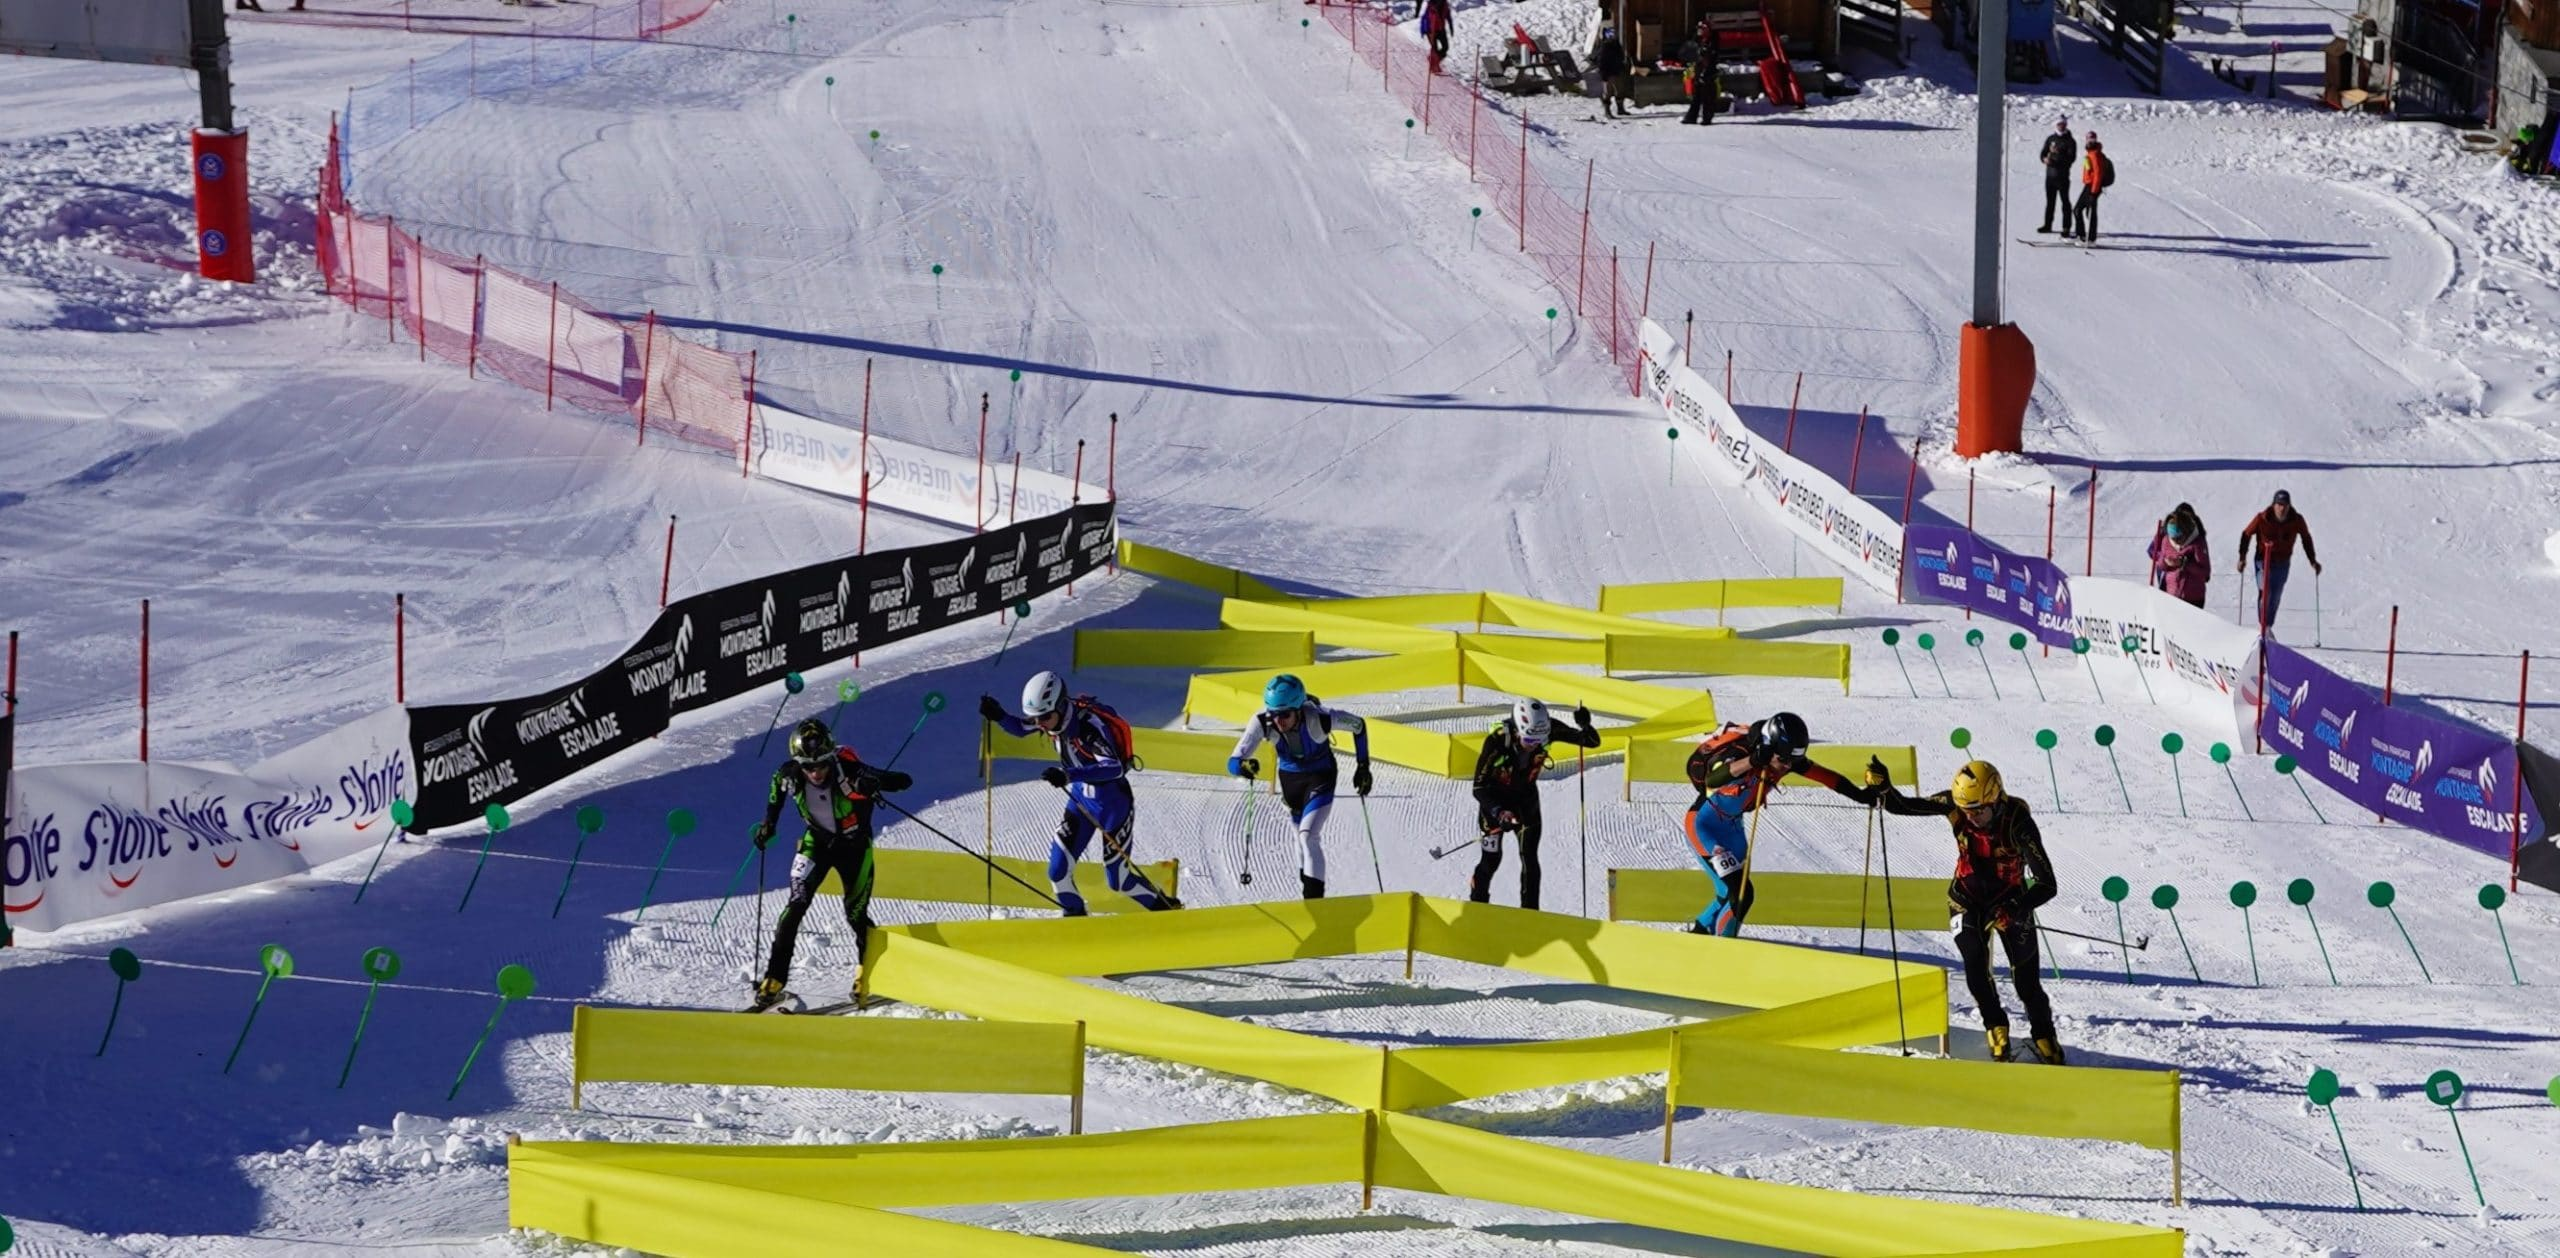 Les moments forts du championnat de France de ski-alpinisme – Sprint à Méribel